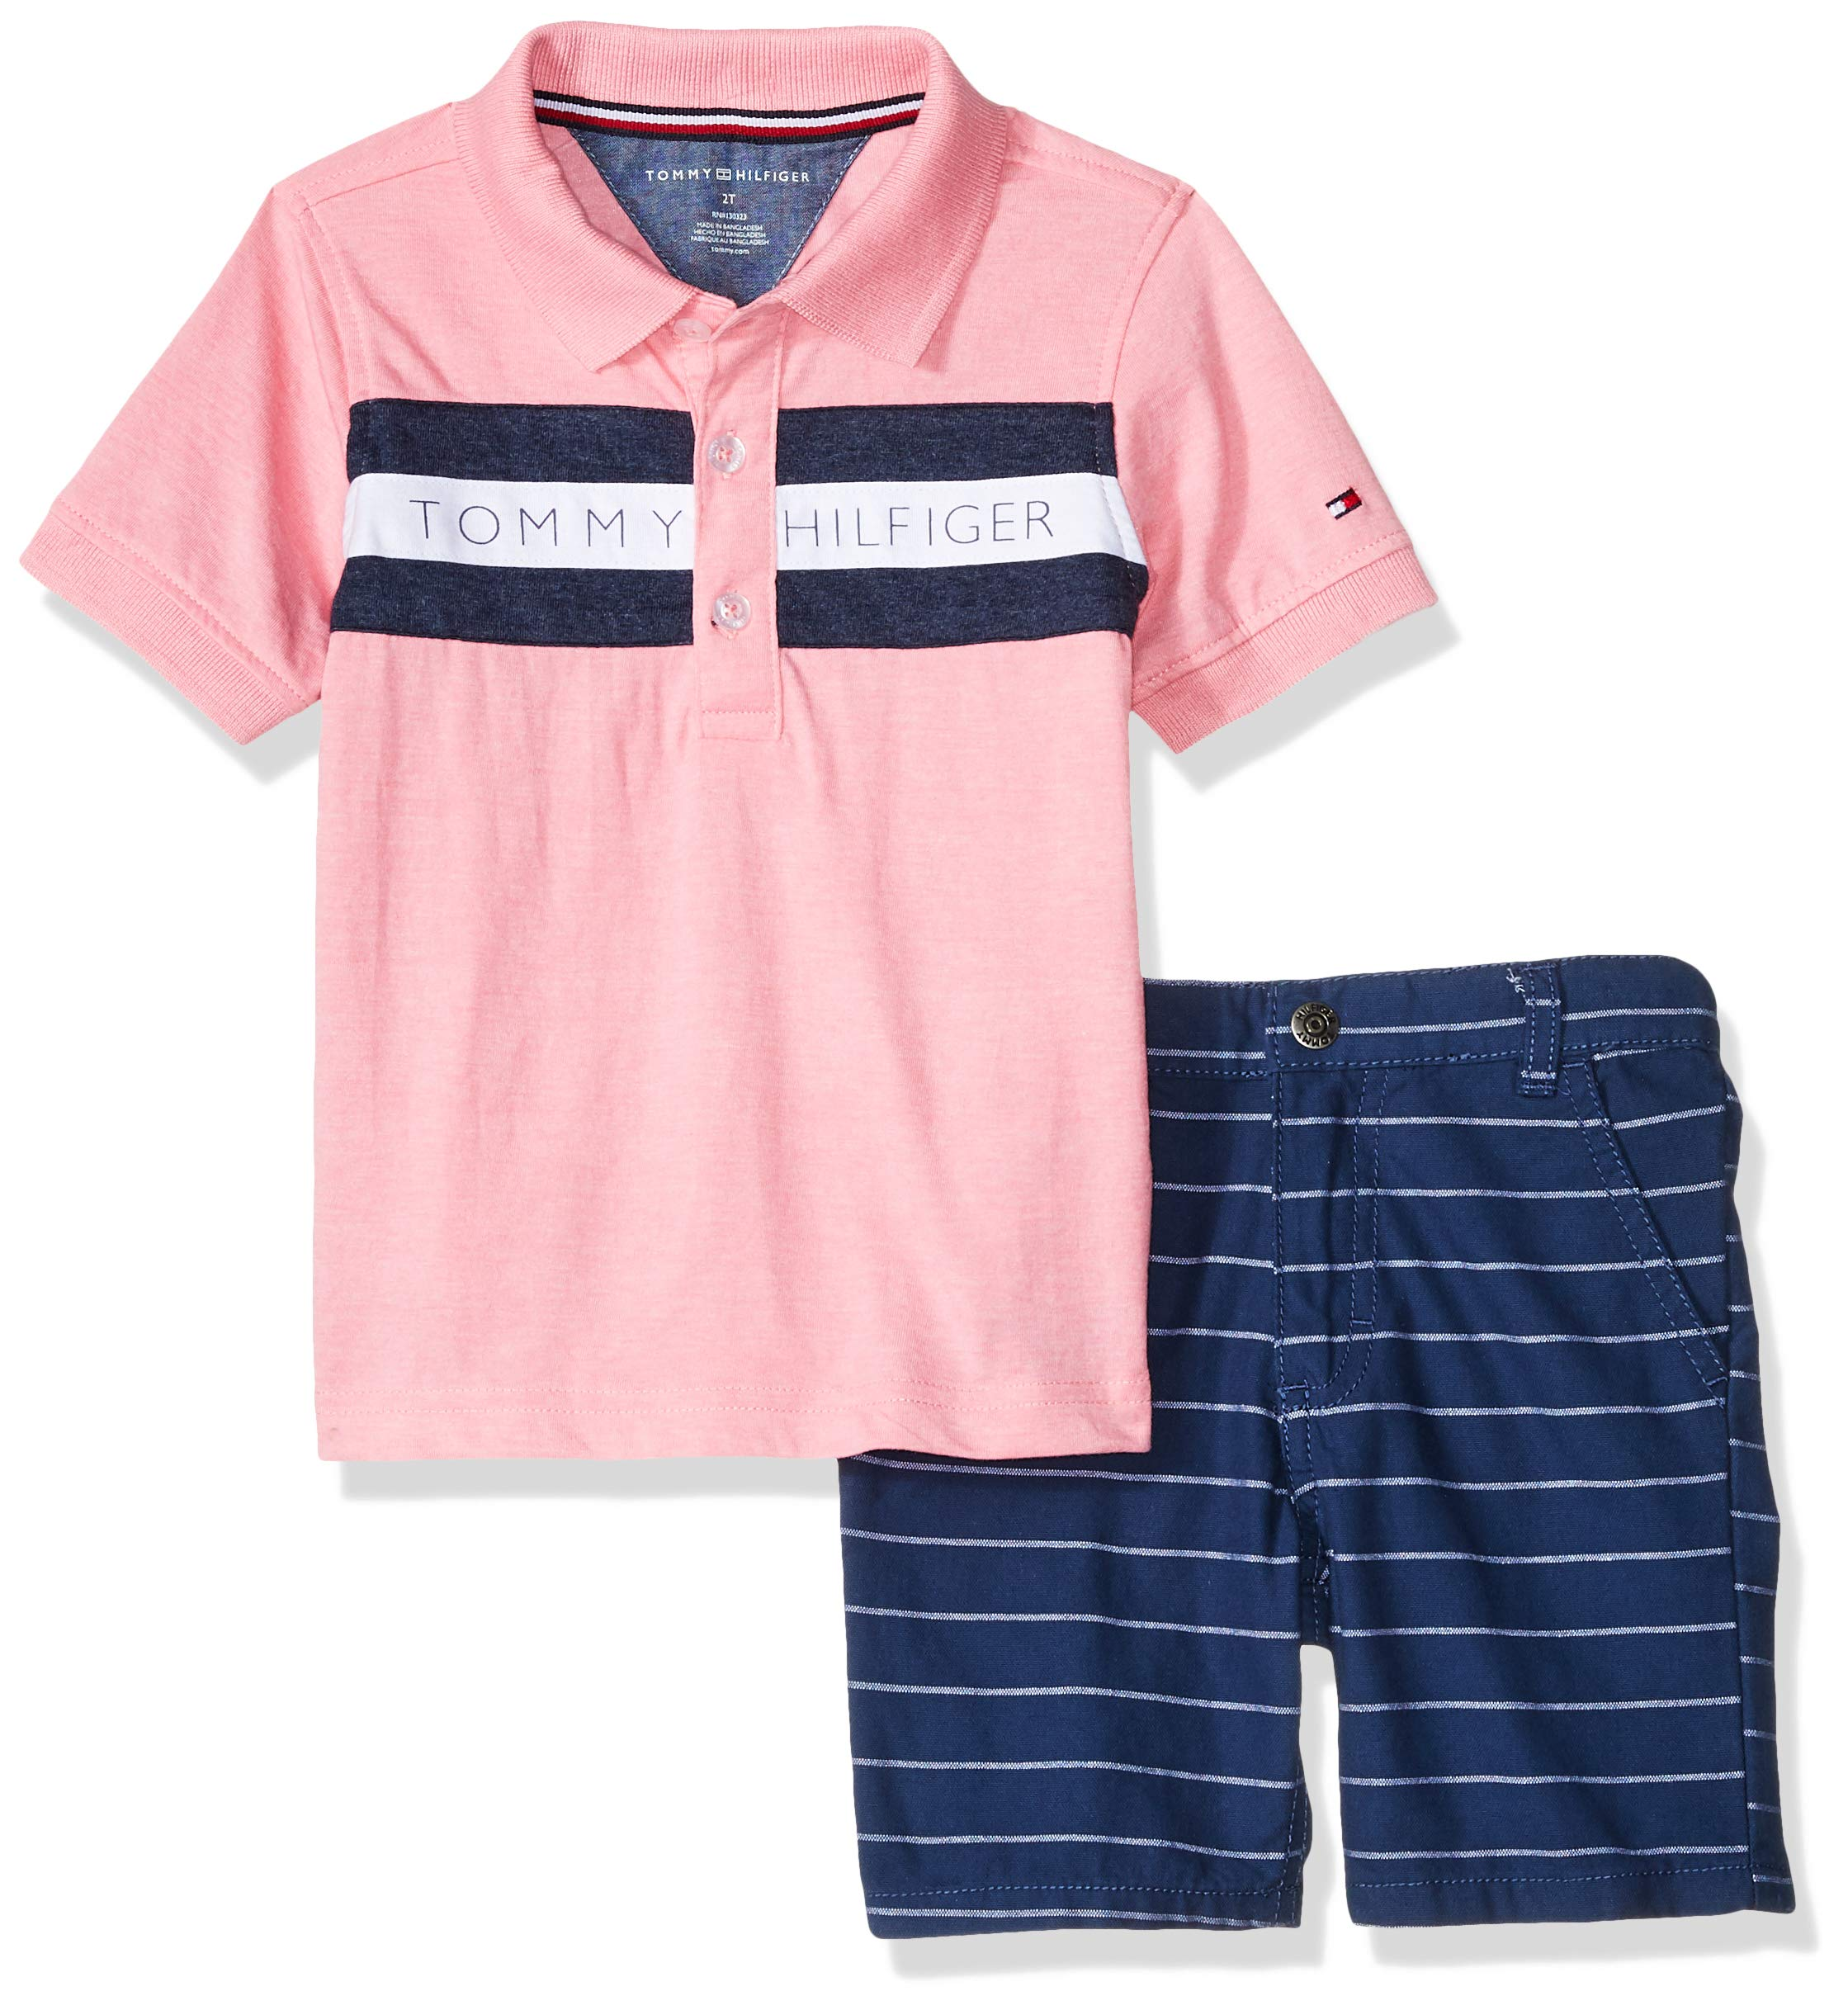 Tommy Hilfiger Boys' Toddler 2 Pieces Polo Shorts Set, Pink/Blue 2T